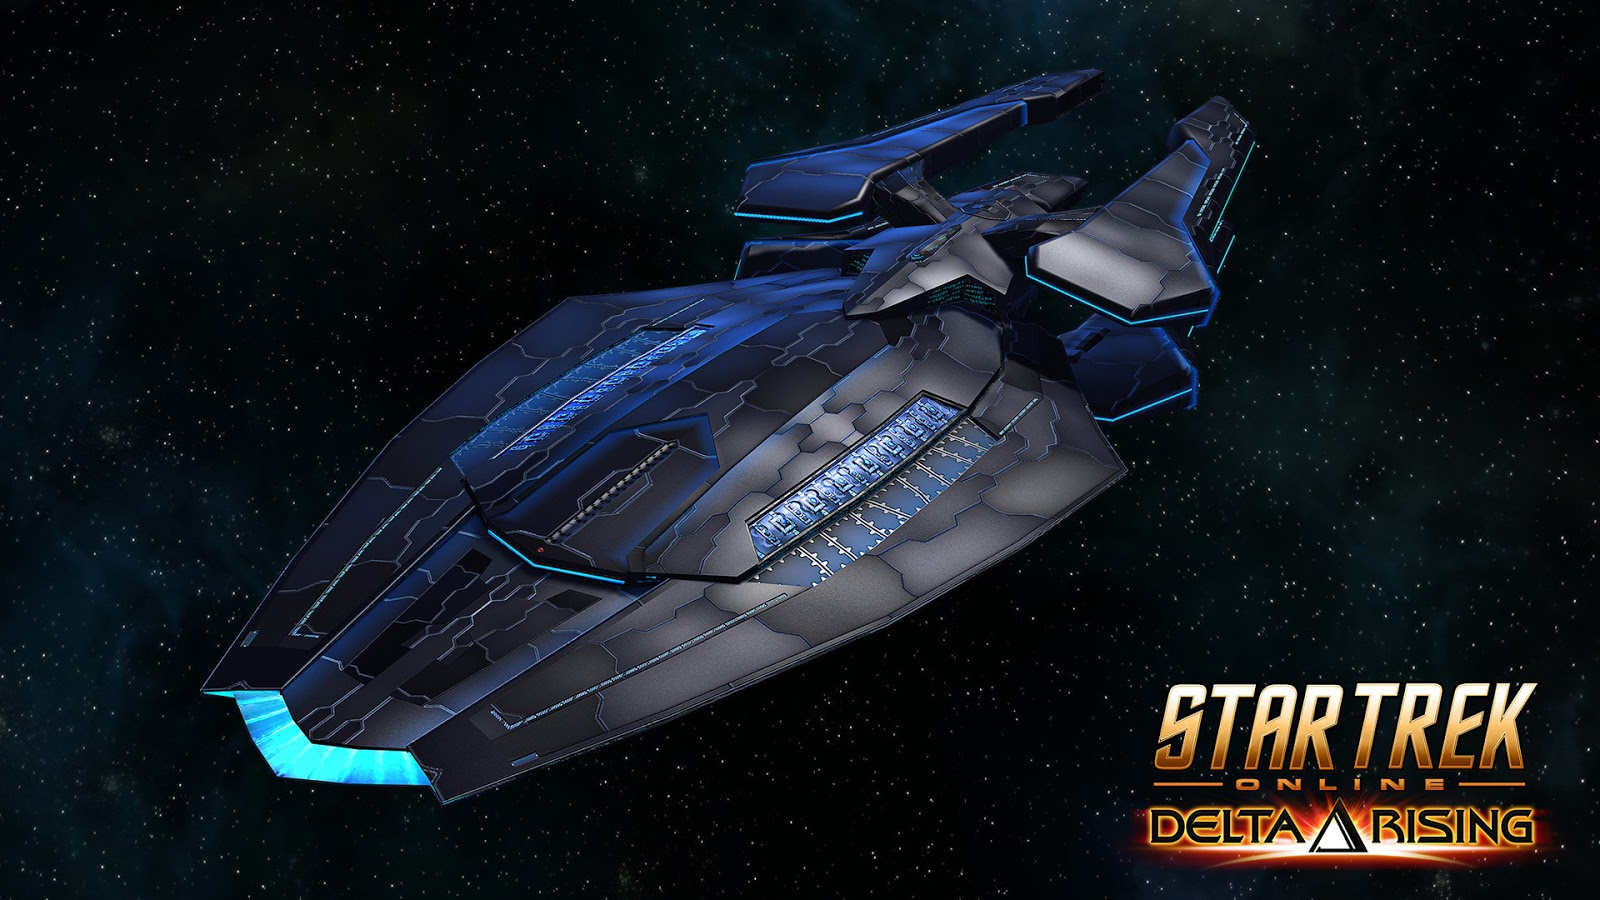 The Trek Collective: Star Trek Online: Delta Rising